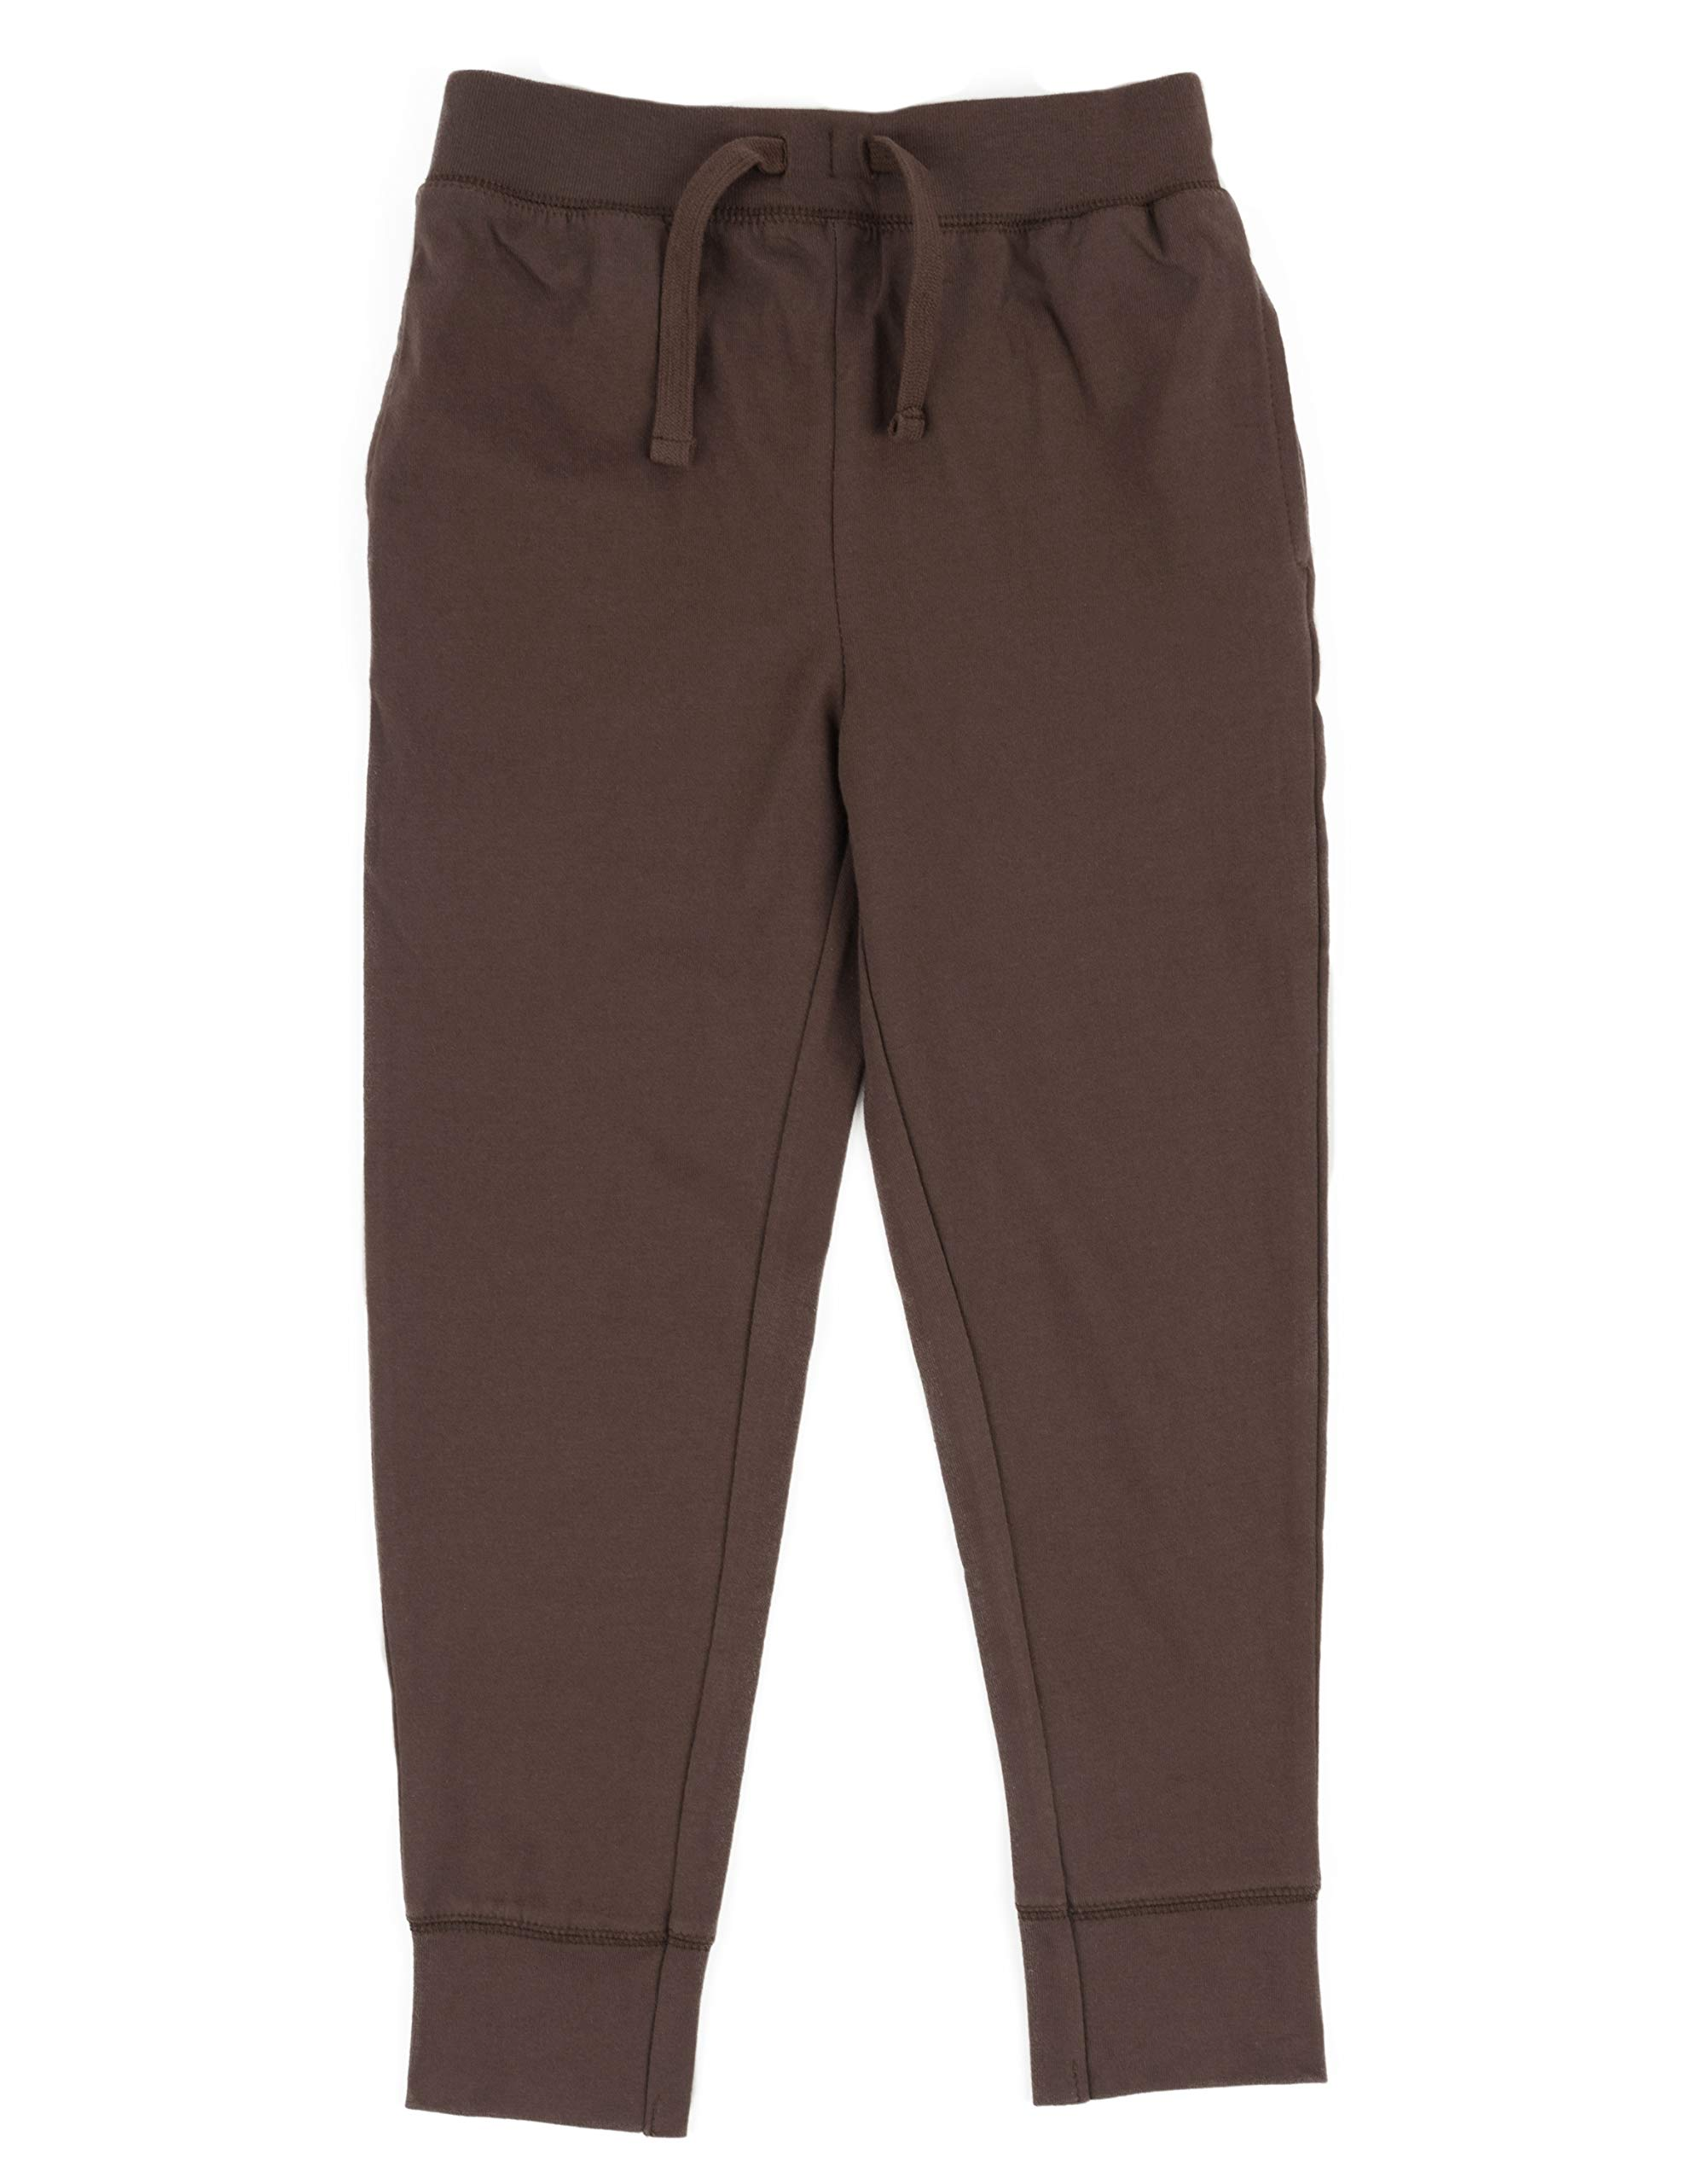 Leveret Kids Boys Pants Brown Size 10 Years